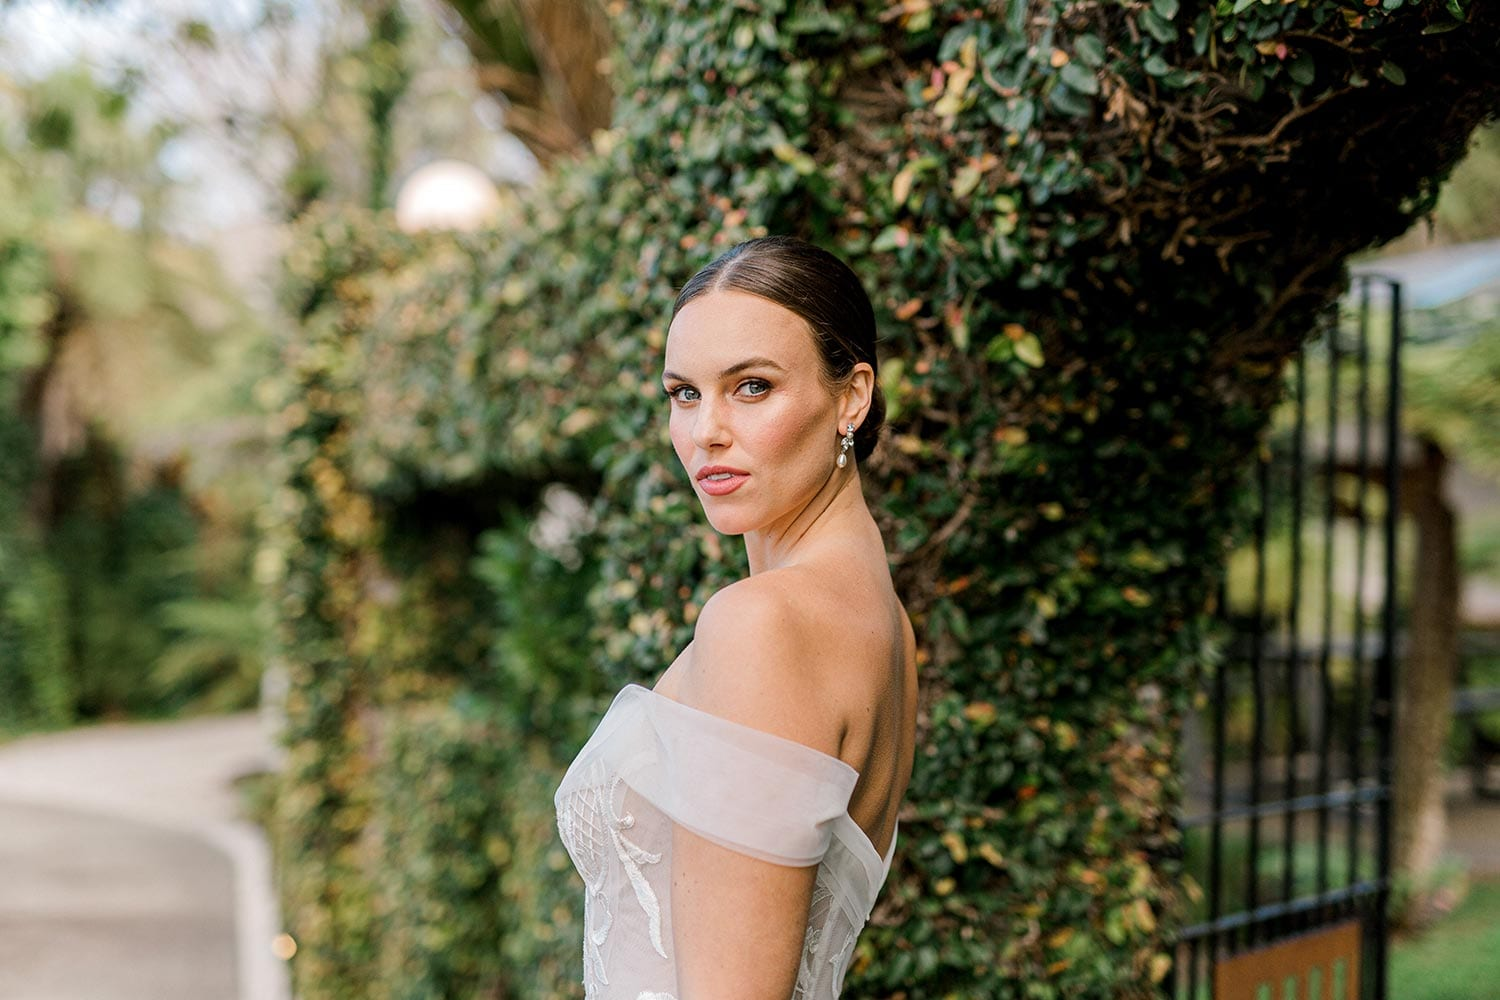 Zoe wedding dress by Vinka Design - a romantic & dreamy off-shoulder gown with a structured, boned bodice, a full lace & tulle skirt. Semi-sheer bodice with tulle off-shoulder detailing and satin belt. Worn in gardens.